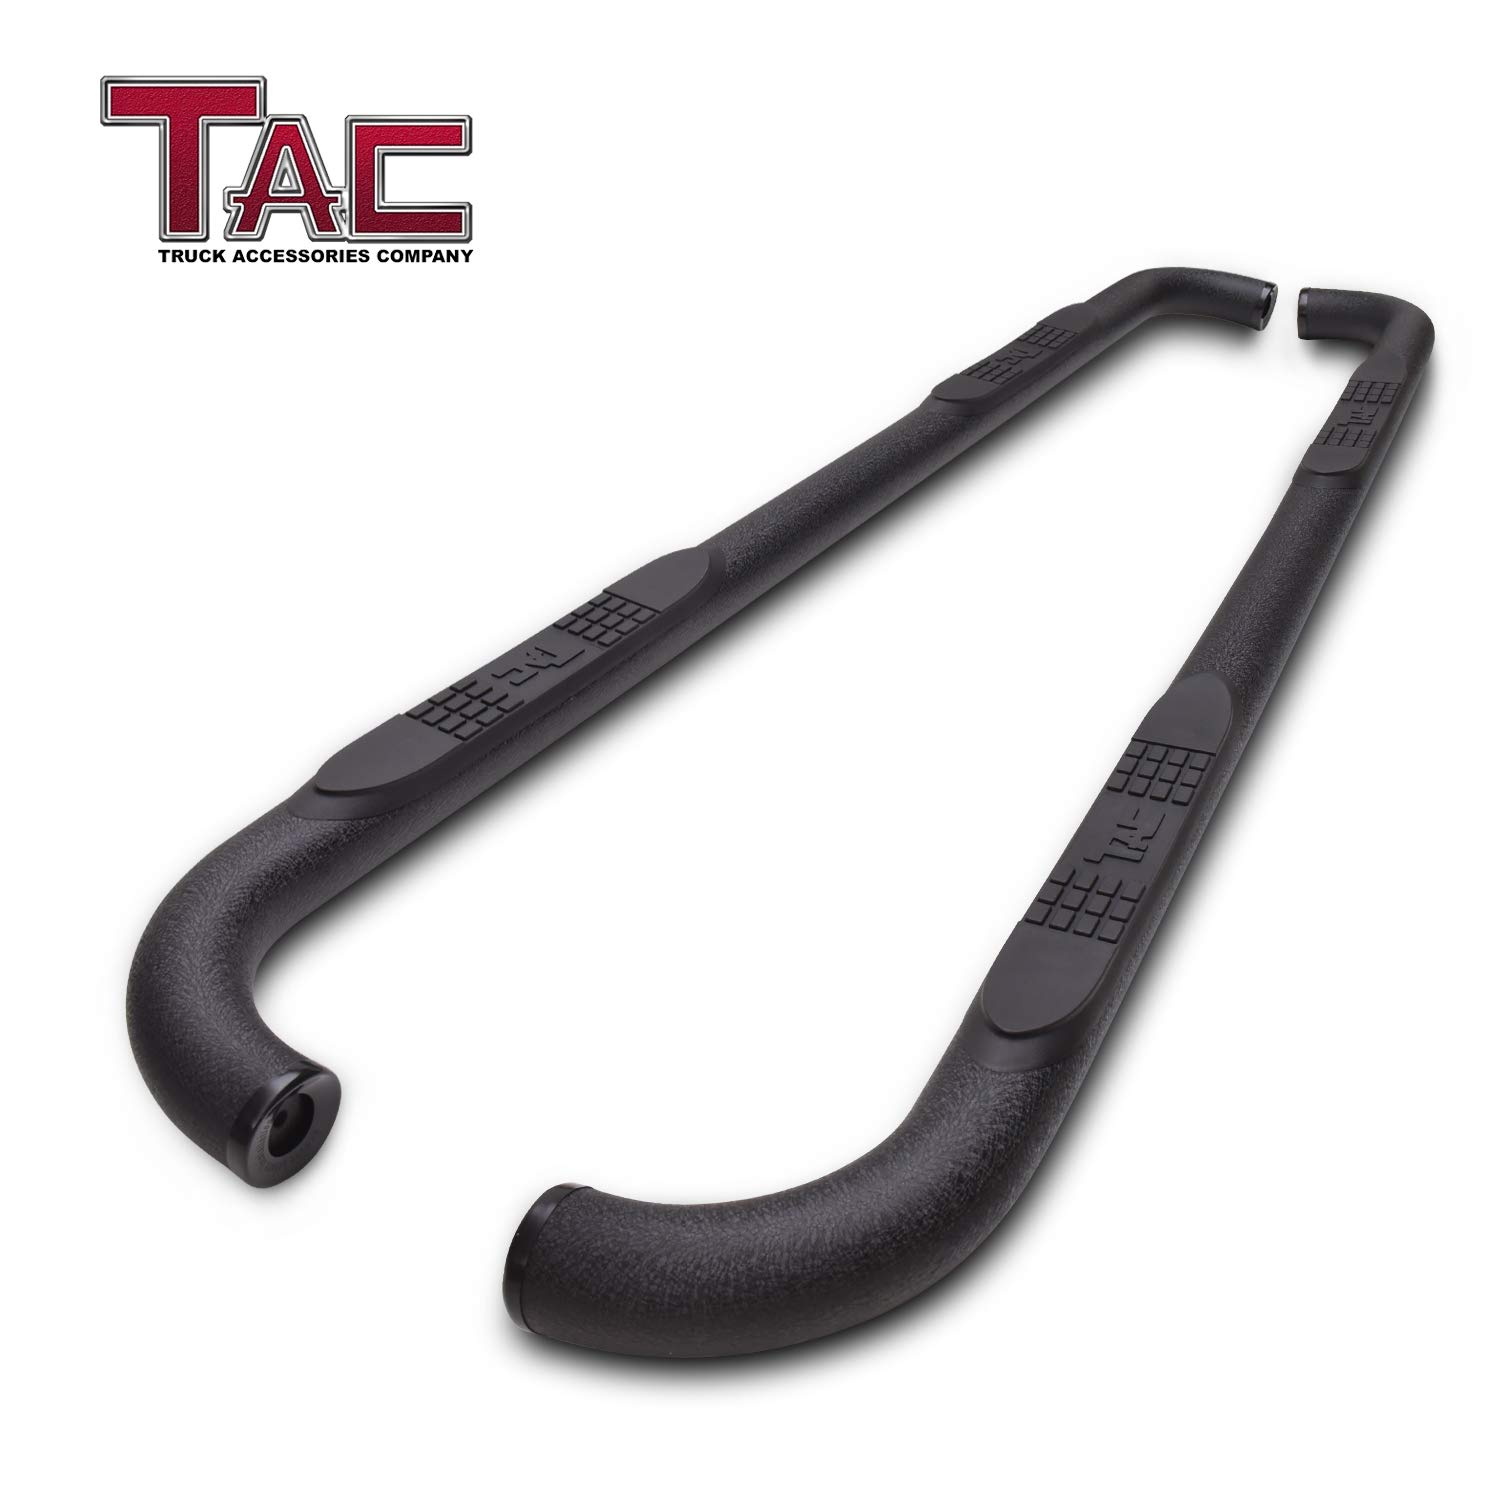 "TAC Side Steps Running Boards Fit 2009-2018 Dodge Ram 1500 Crew Cab (Incl. 2019 Ram 1500 Classic)/ 2010-2019 Dodge Ram 2500/3500/4500/5500 Crew Cab Truck Pickup 3"" Texture Black Side Bars Nerf Bars"